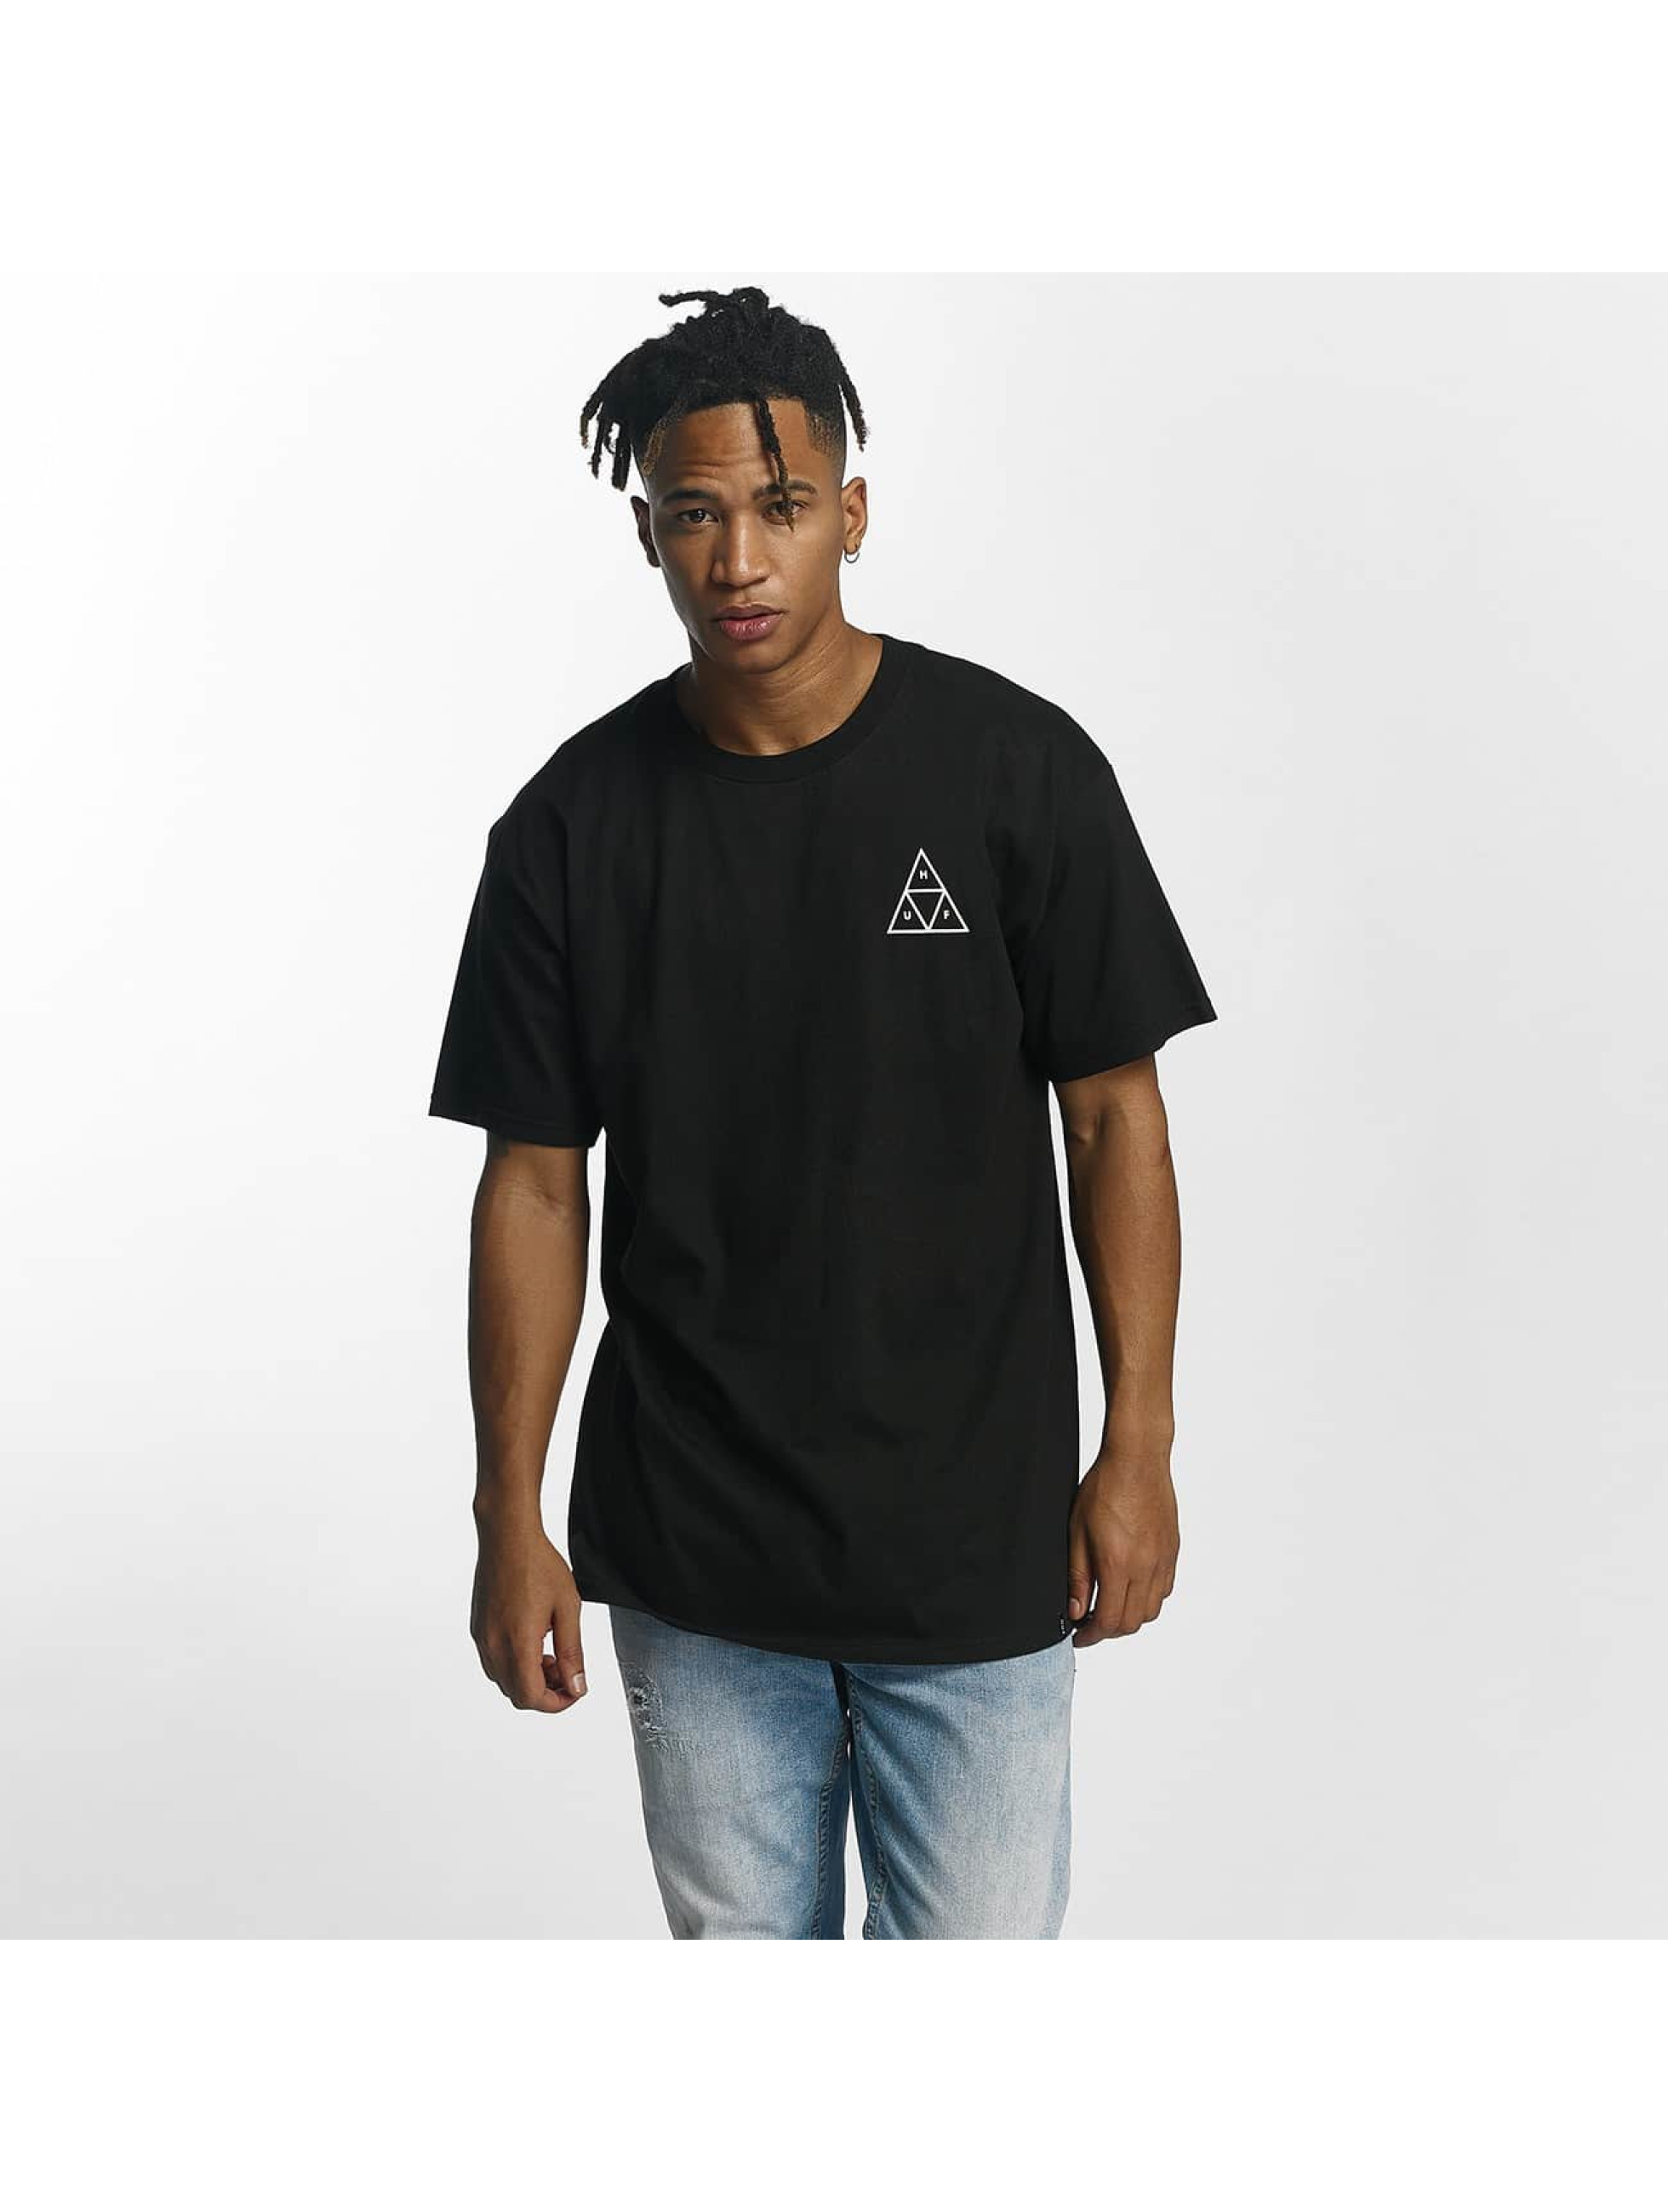 HUF Männer T-Shirt Roses Triple Triangle in schwarz